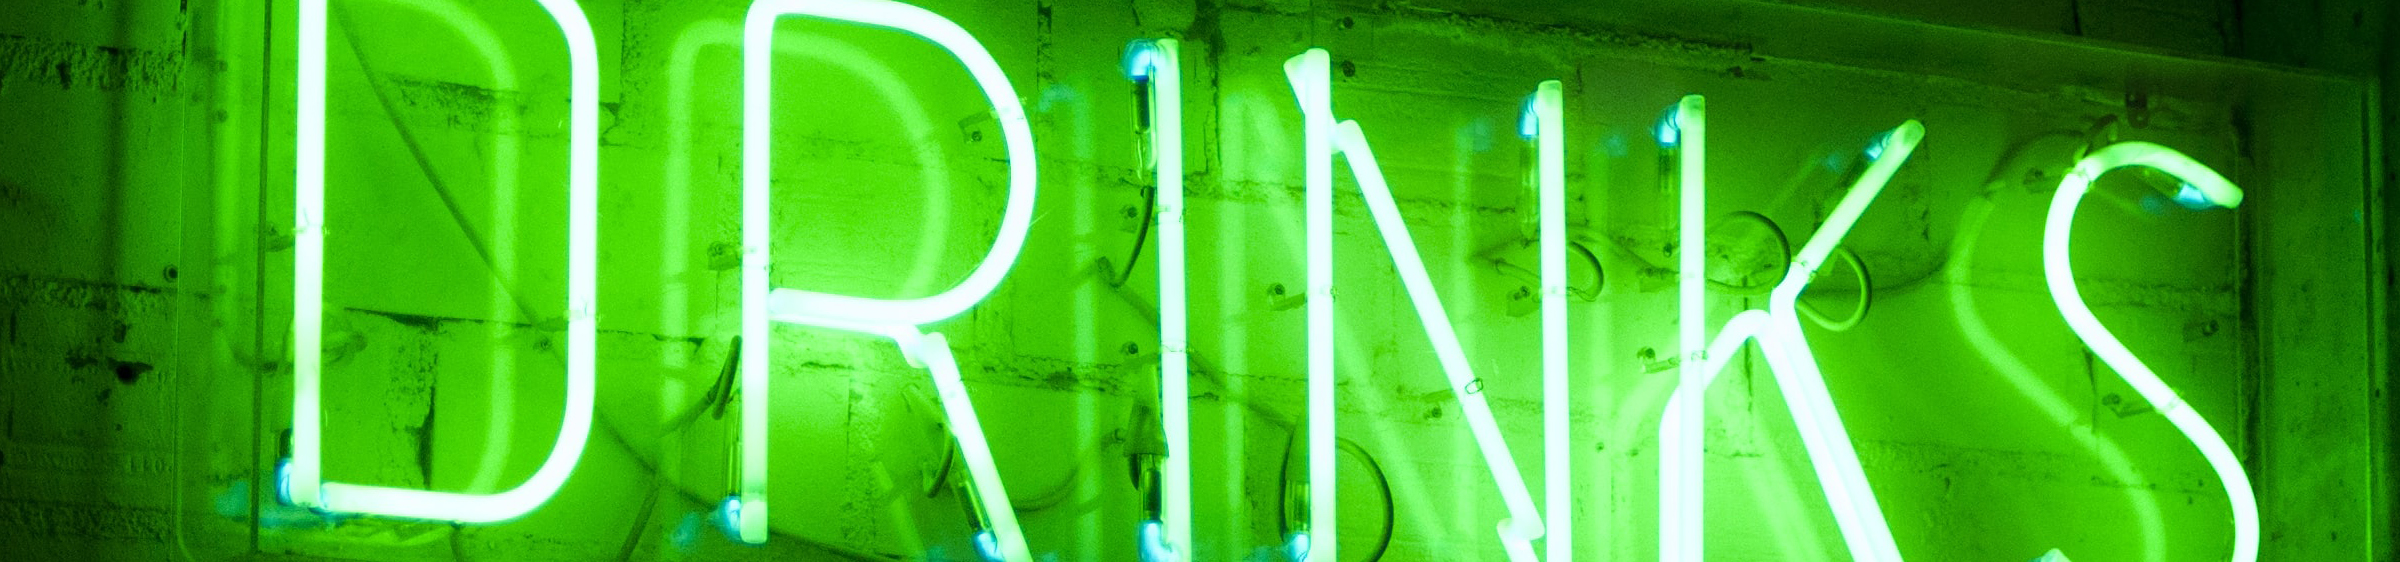 Neon 'Drink' Sign